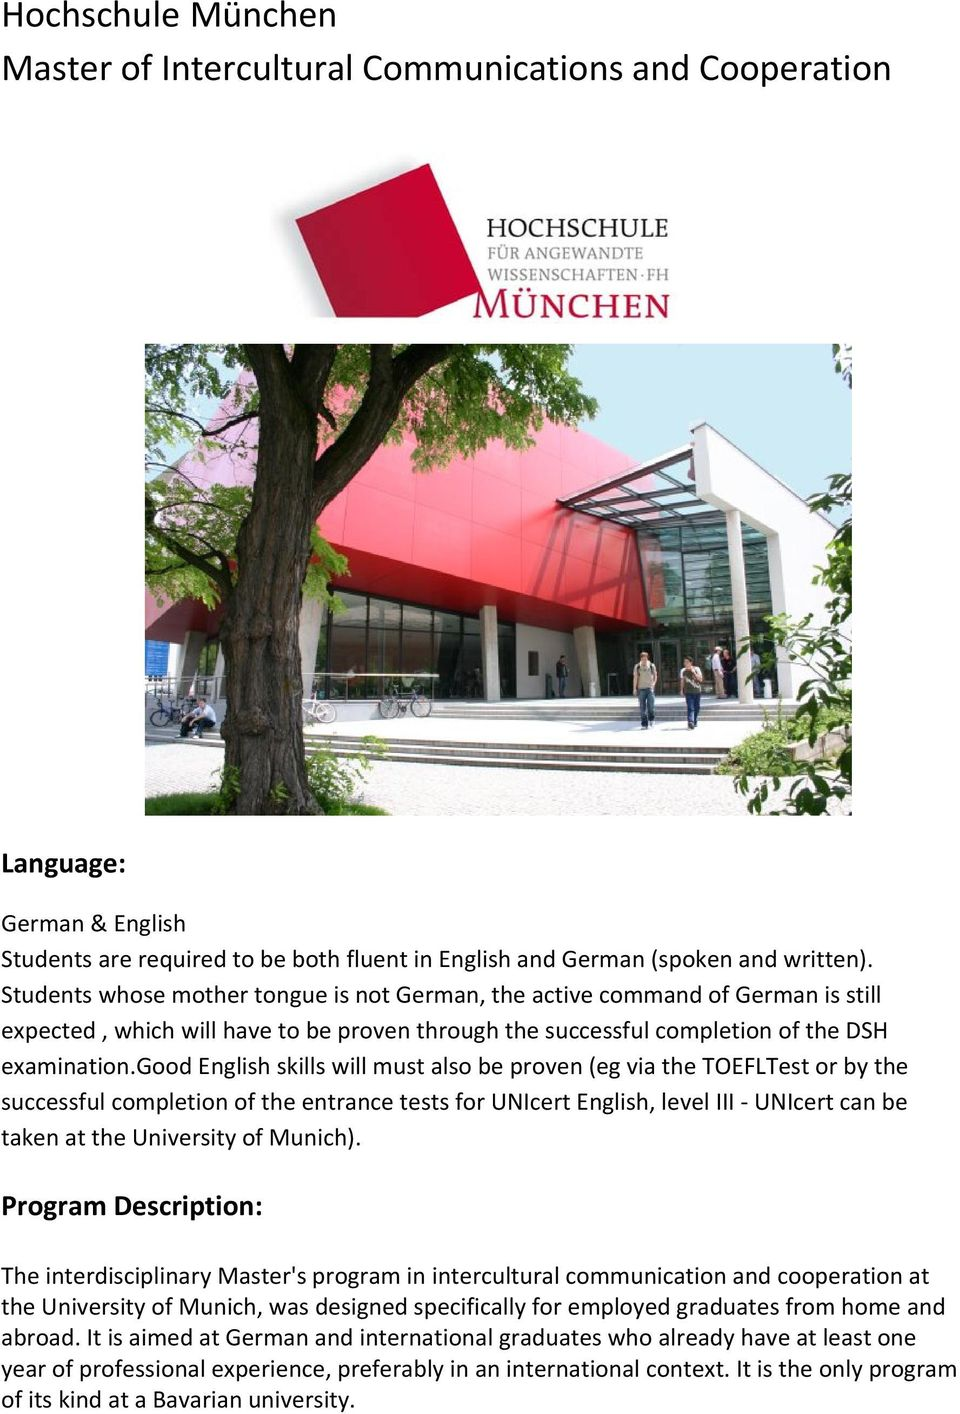 good English skills will must also be proven (eg via the TOEFLTest or by the successful completion of the entrance tests for UNIcert English, level III UNIcert can be taken at the University of